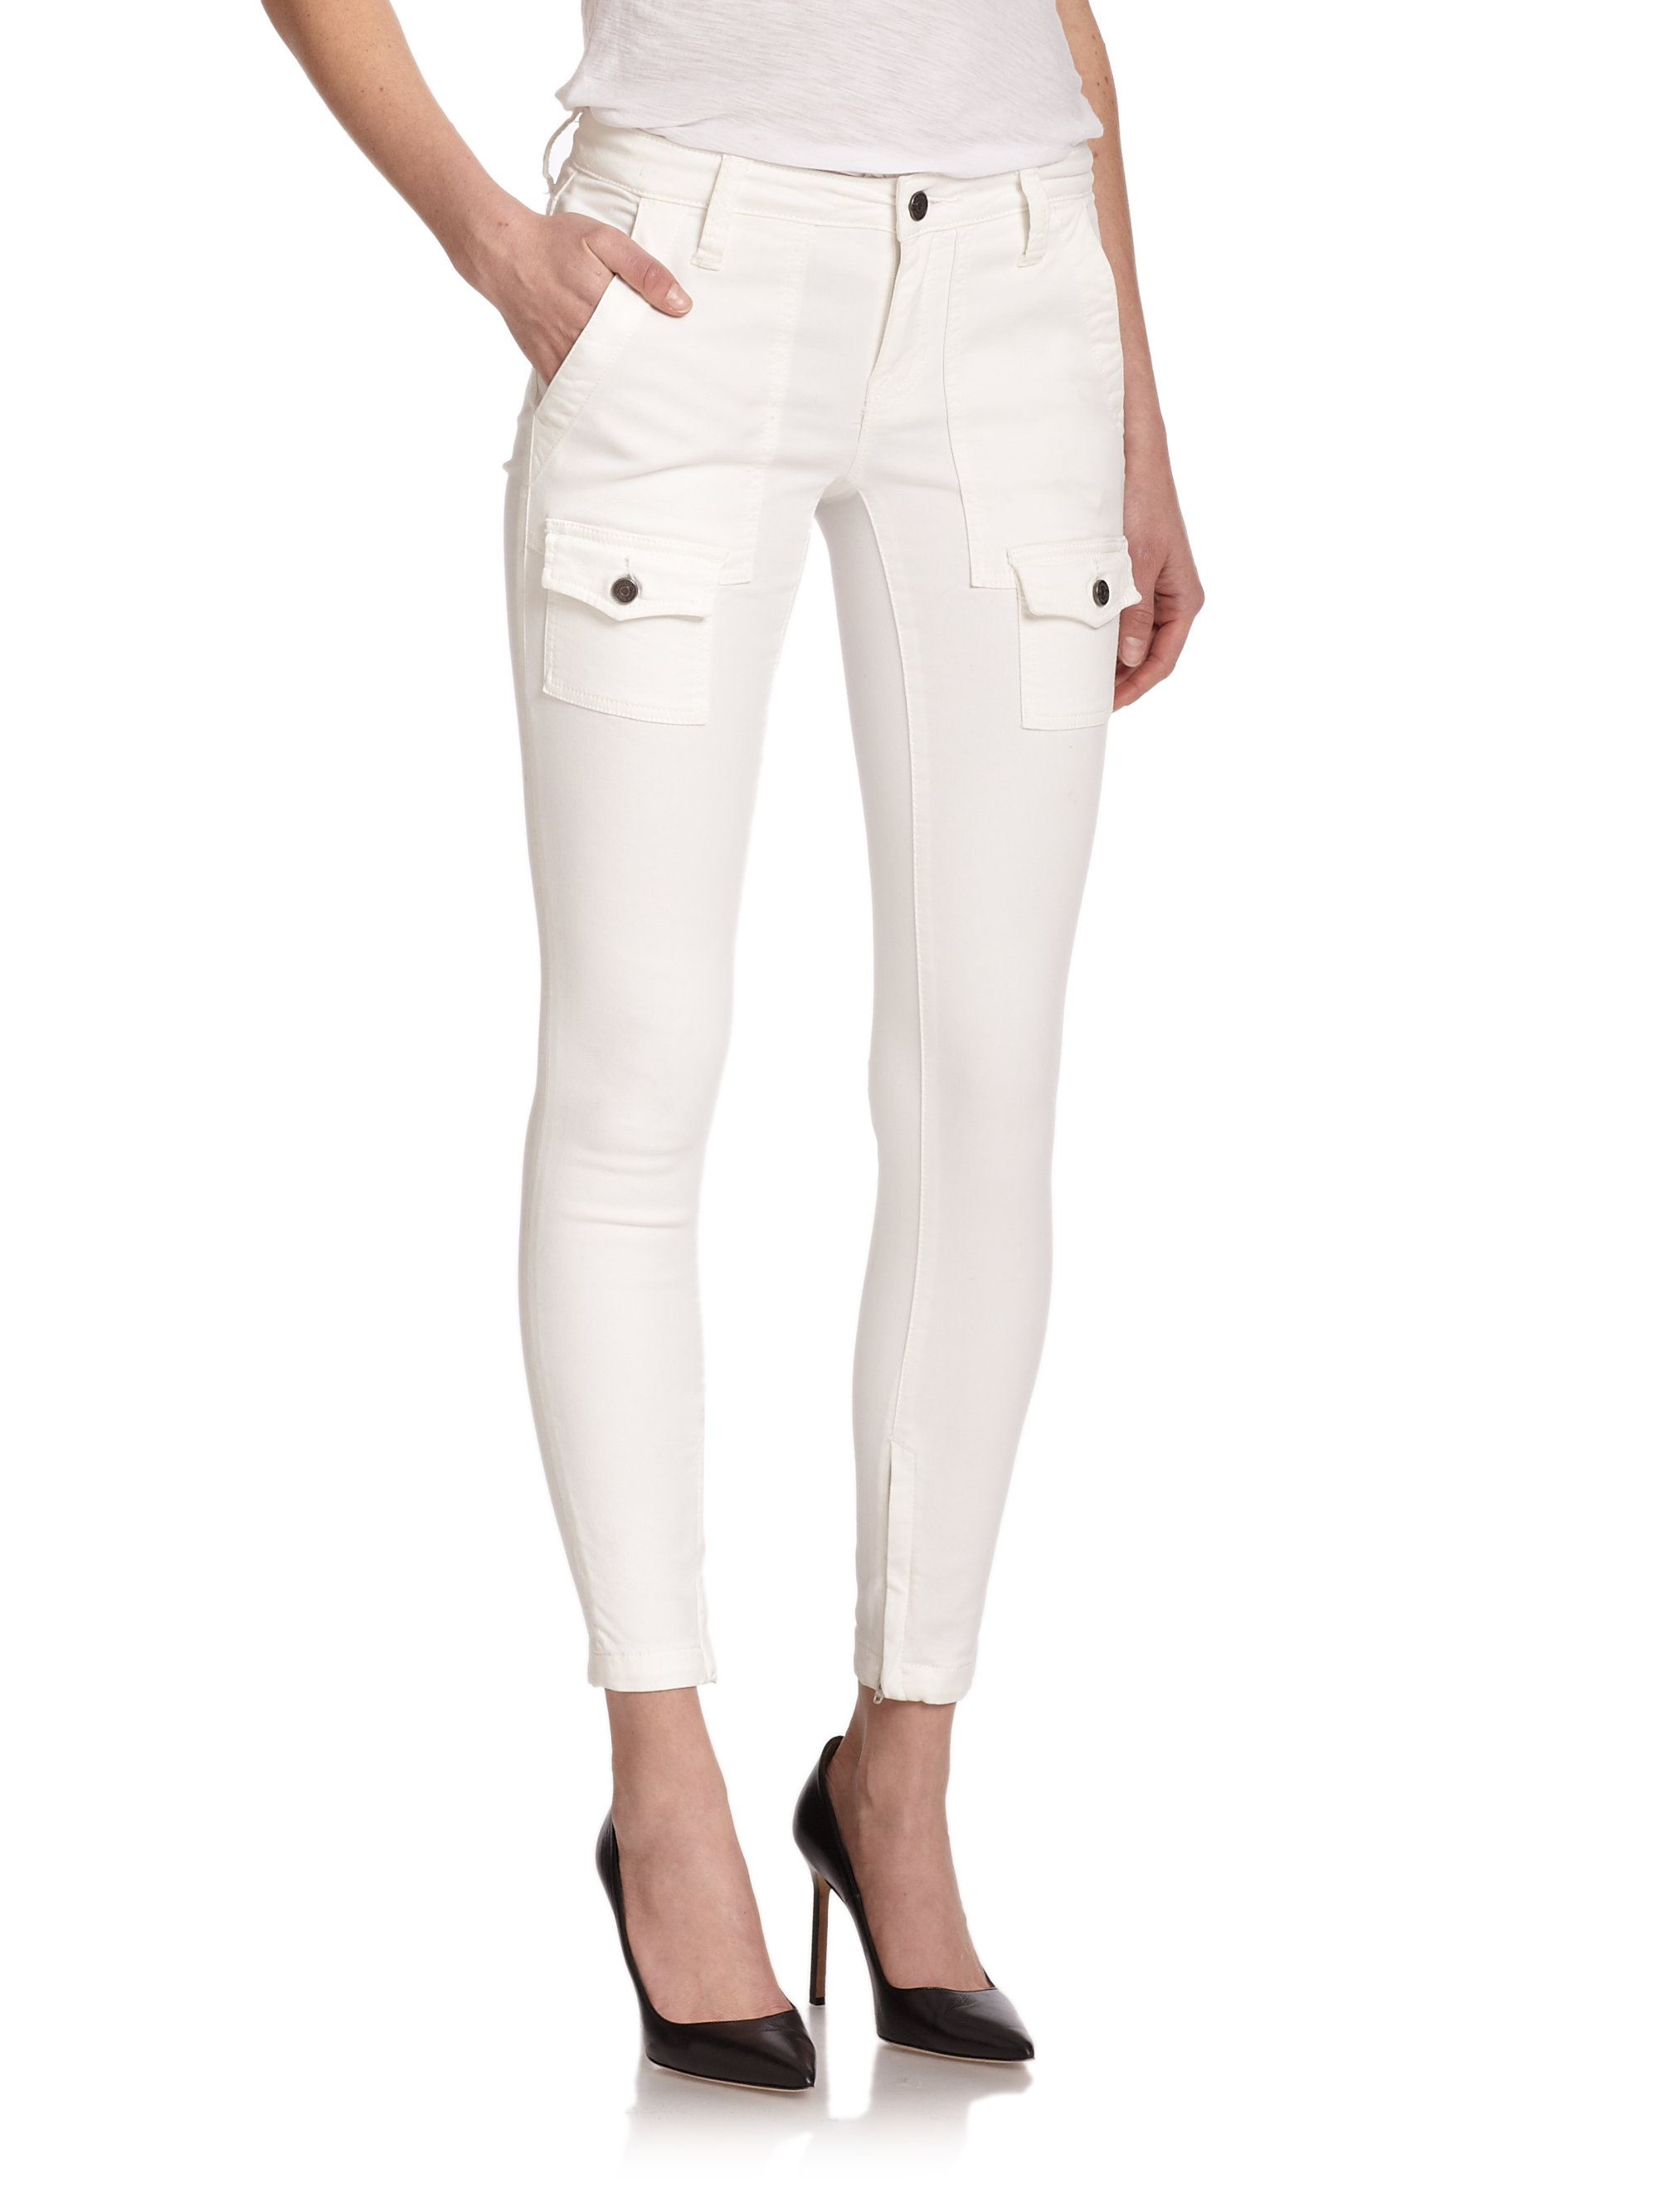 Joie So Real Skinny Cargo Pants in White | Lyst